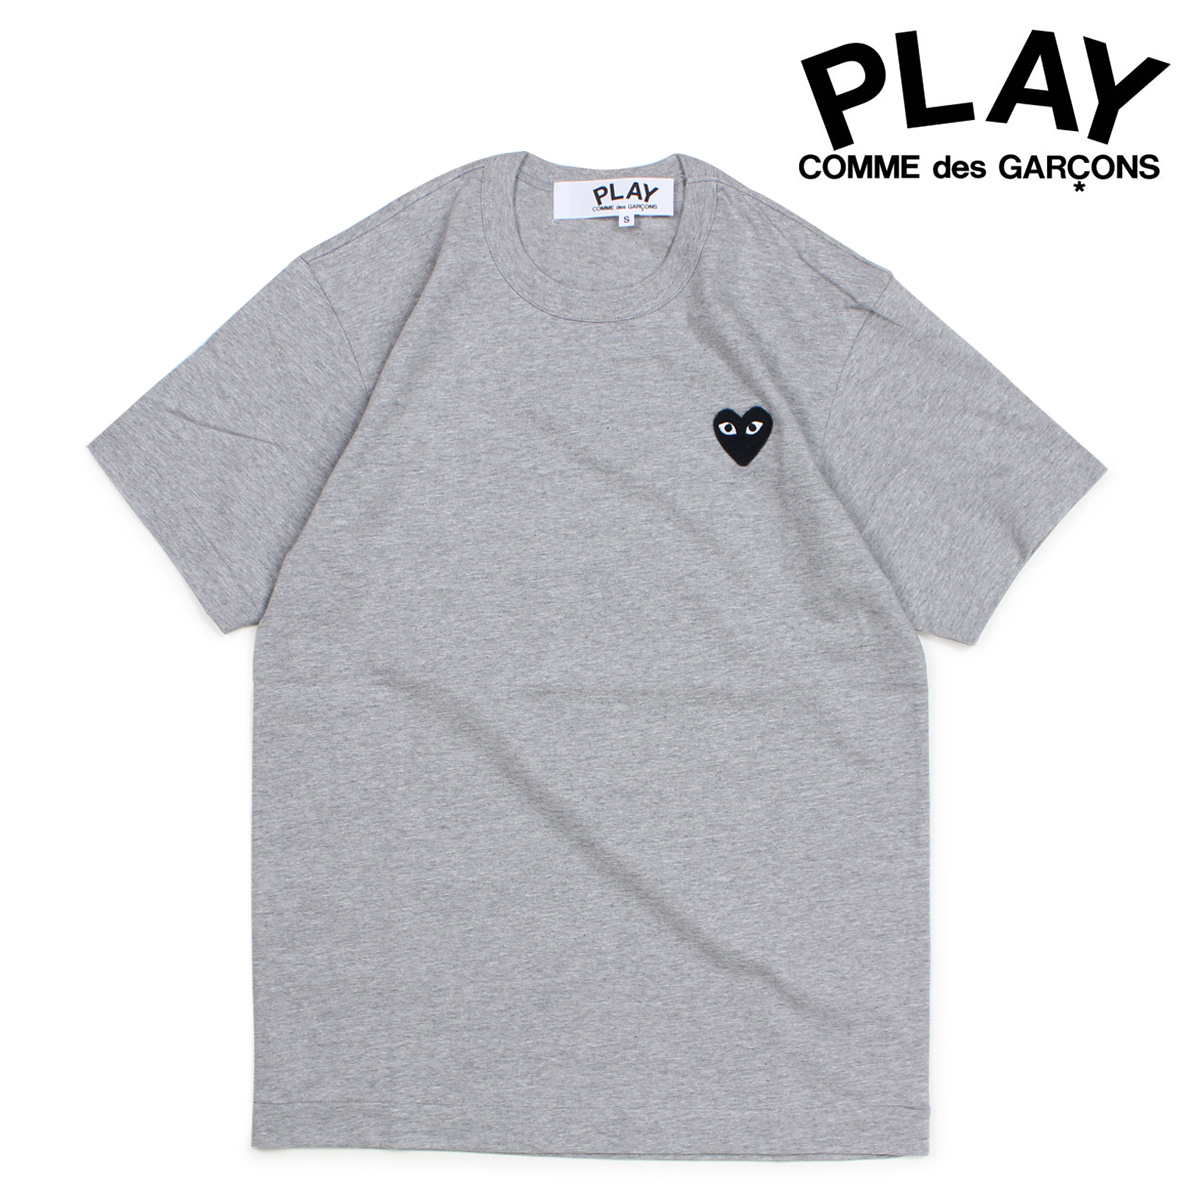 COMME des GARCONS BLACK HEART T-SHIRT コムデギャルソン PLAY Tシャツ 半袖 メンズ グレー AZT076 [10/3 新入荷]